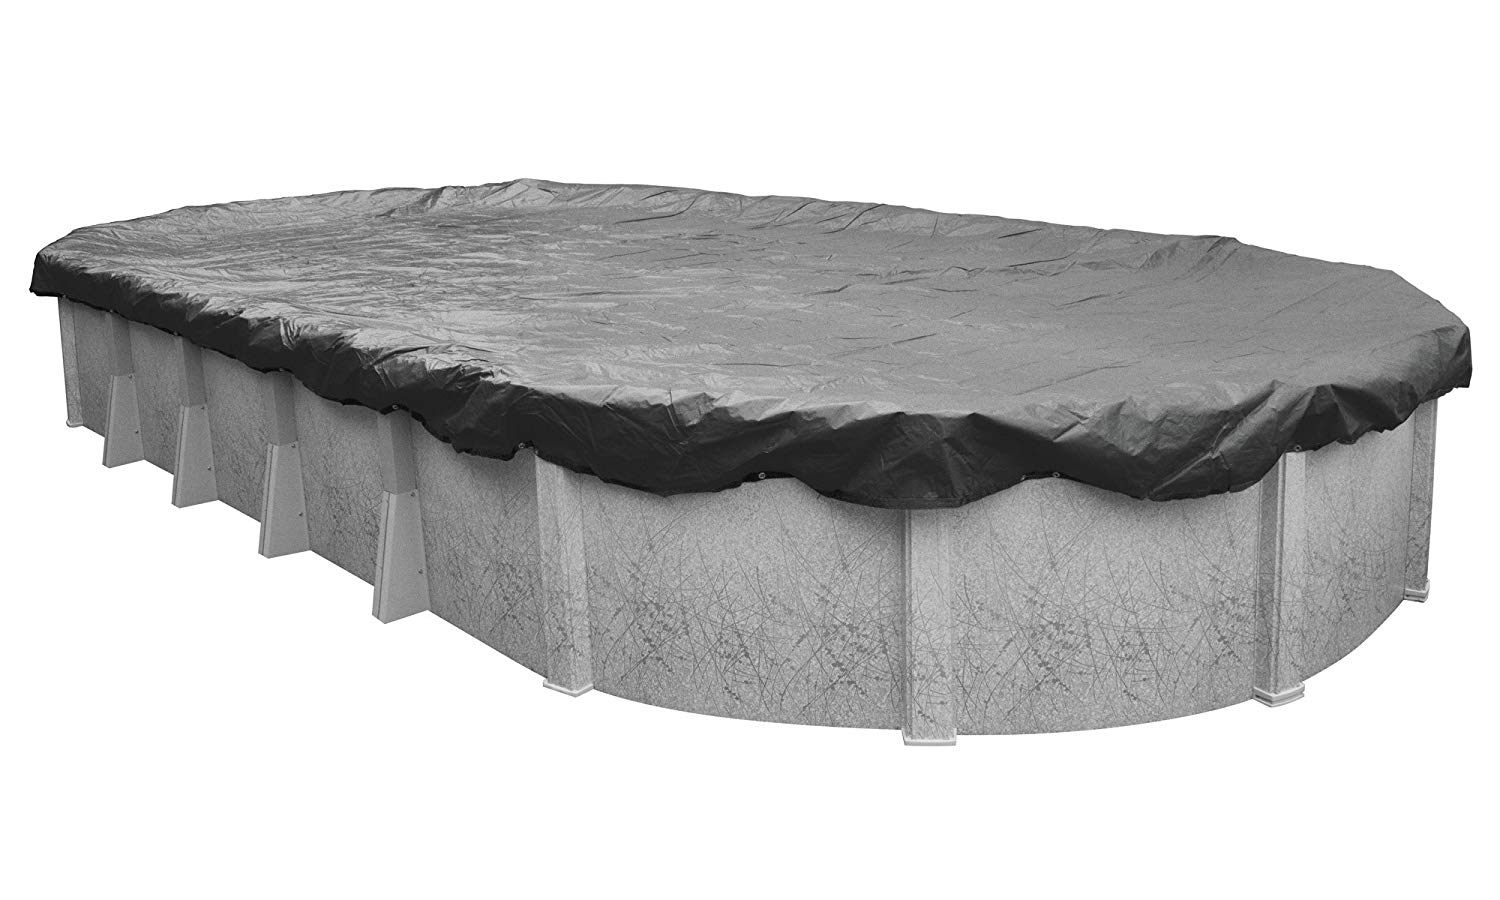 Pool Mate 511833-4-PM 20-Year Professional-Grade Winter Oval Above-Ground Cover, 18 x 33-ft, Charcoal